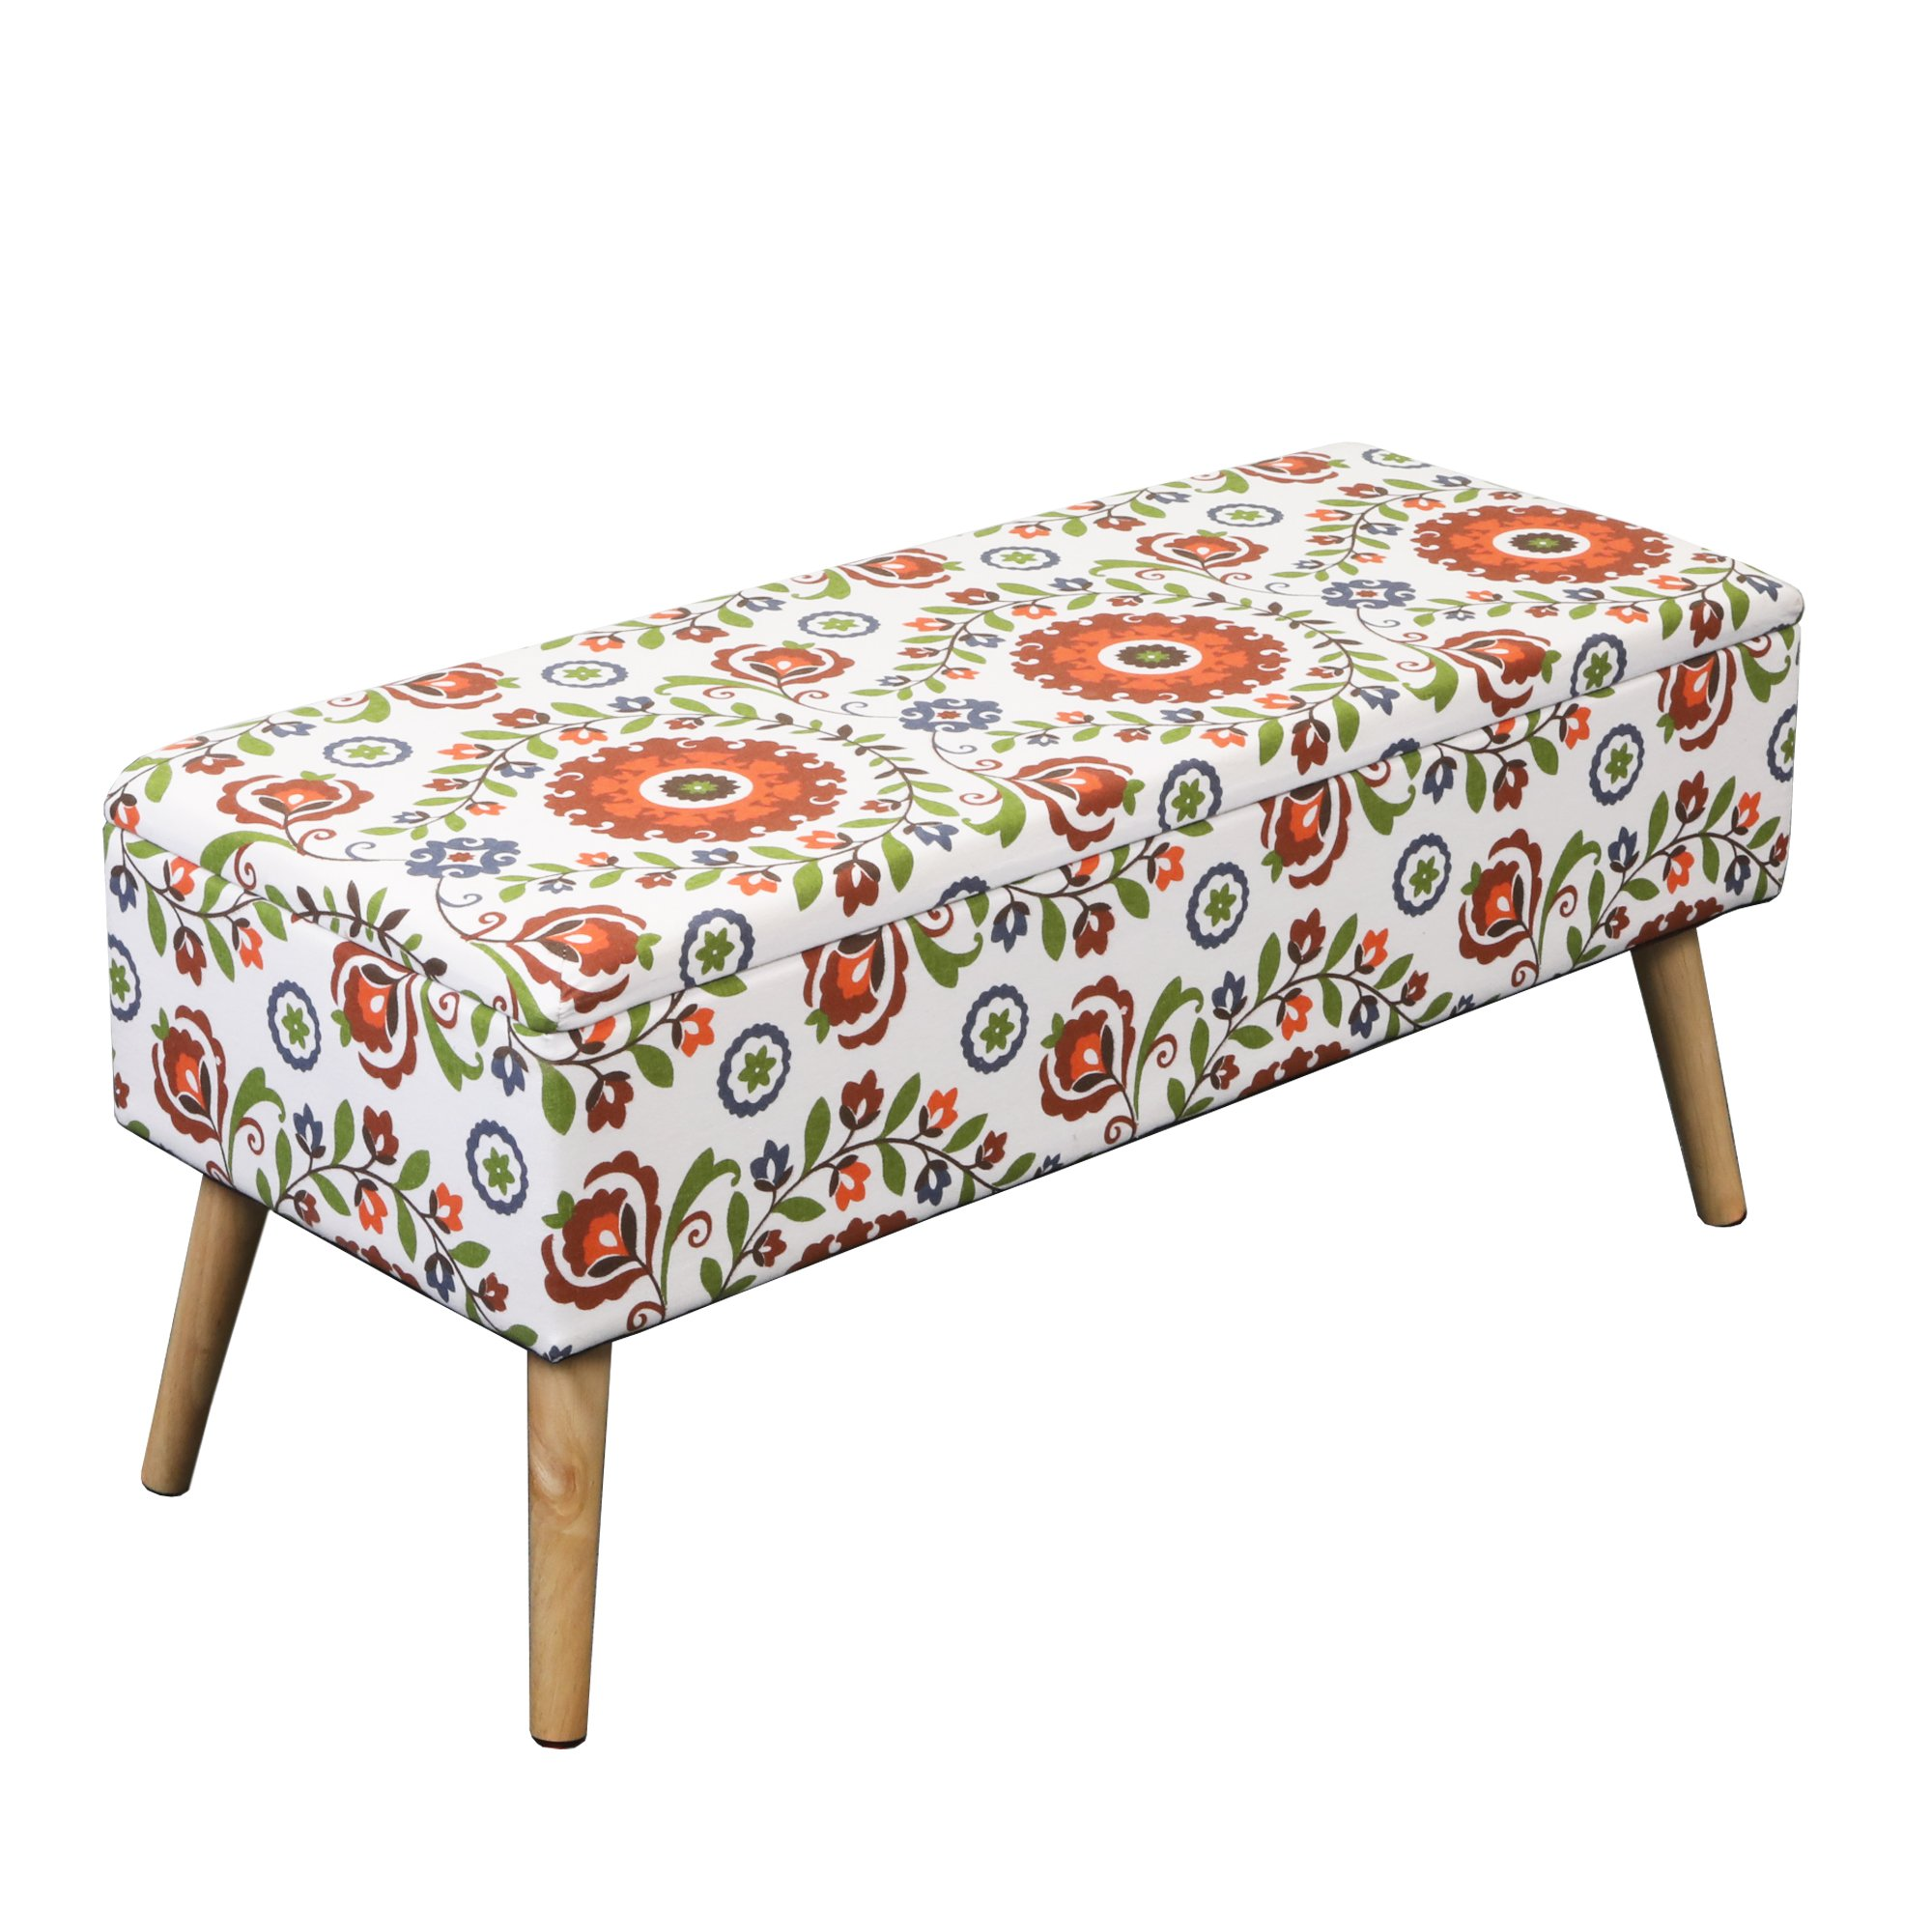 Otto & Ben 37'' Storage Bench - Mid Century Ottoman with EASY LIFT Top, Upholstered Shoe Ottomans Seats for Entryway and Bedroom, Retro Floral by Otto & Ben